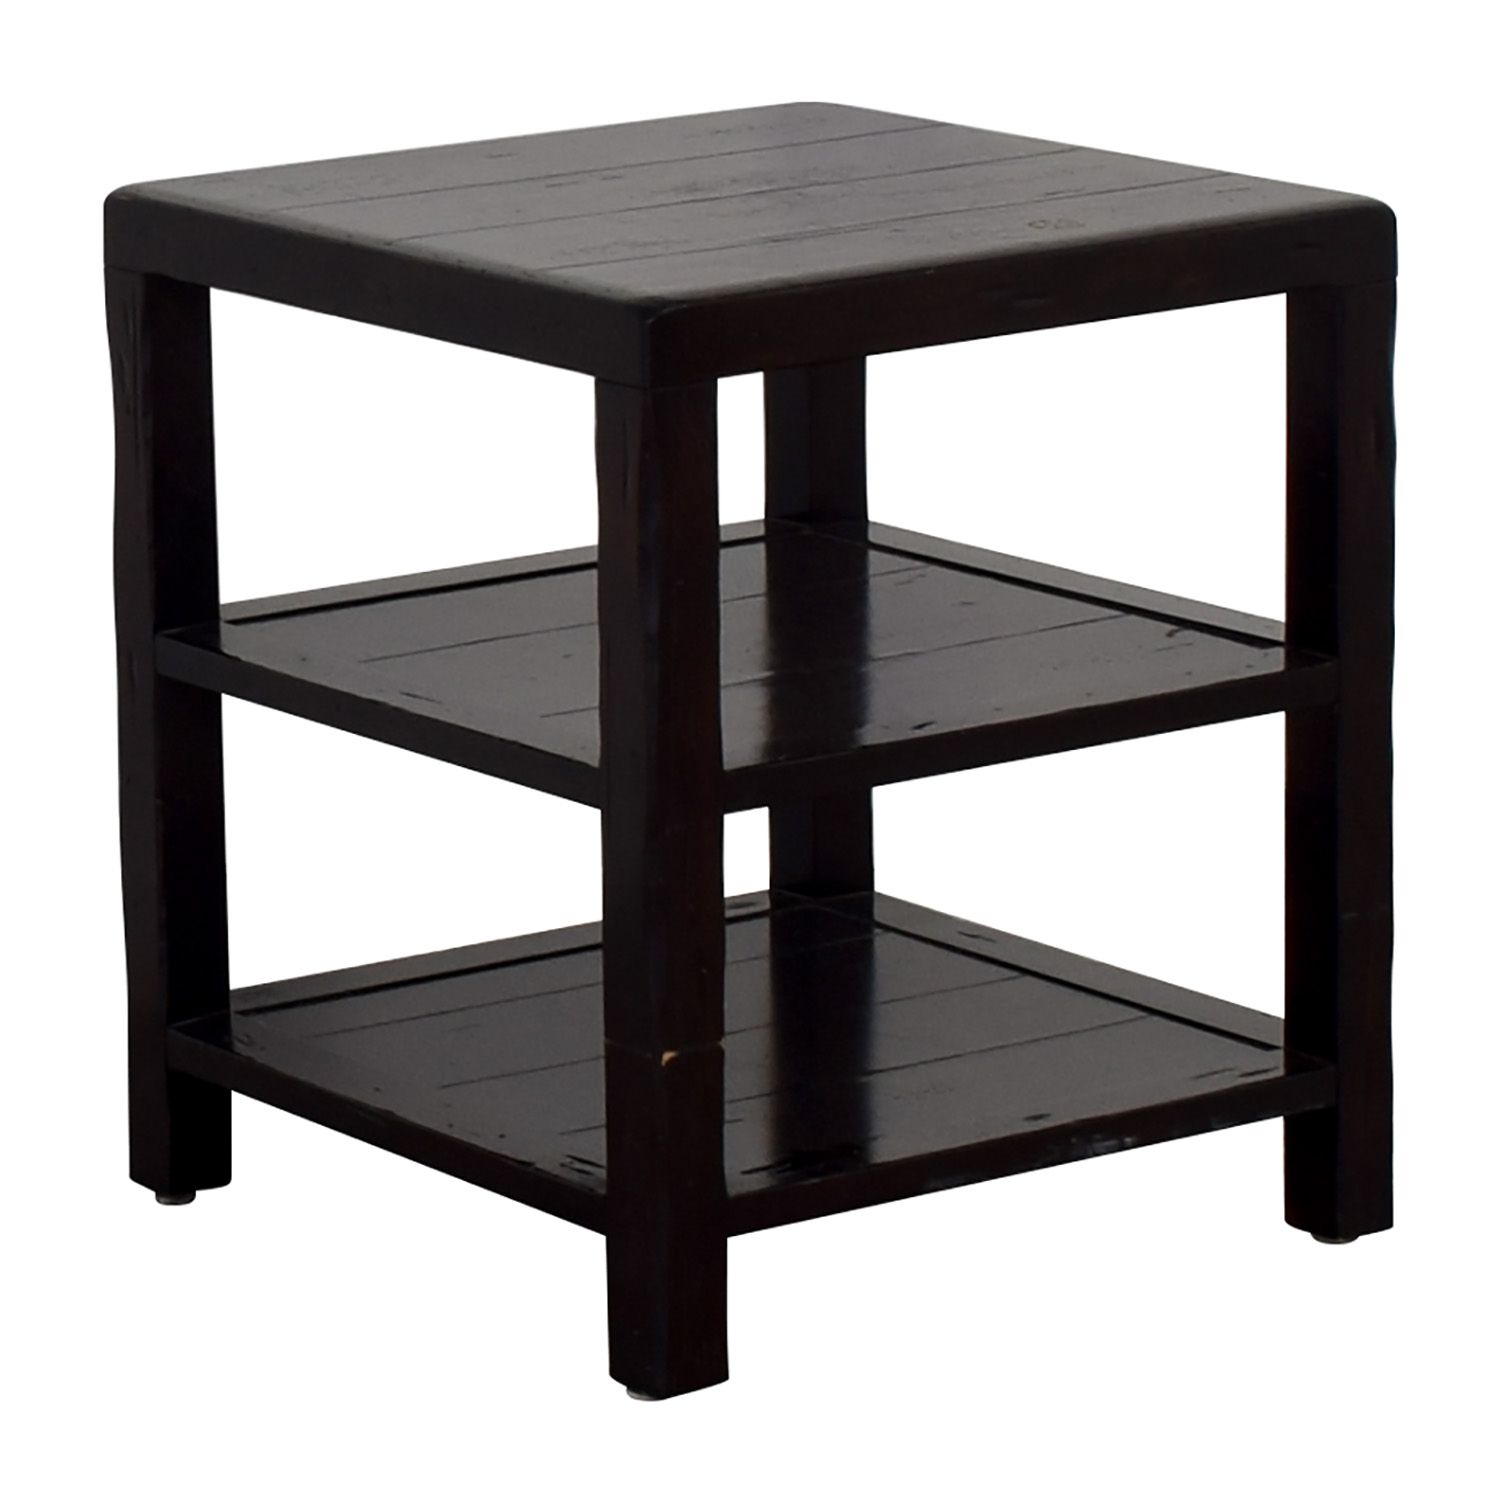 Crate Barrel Table: Crate & Barrel Crate & Barrel Brown End Table